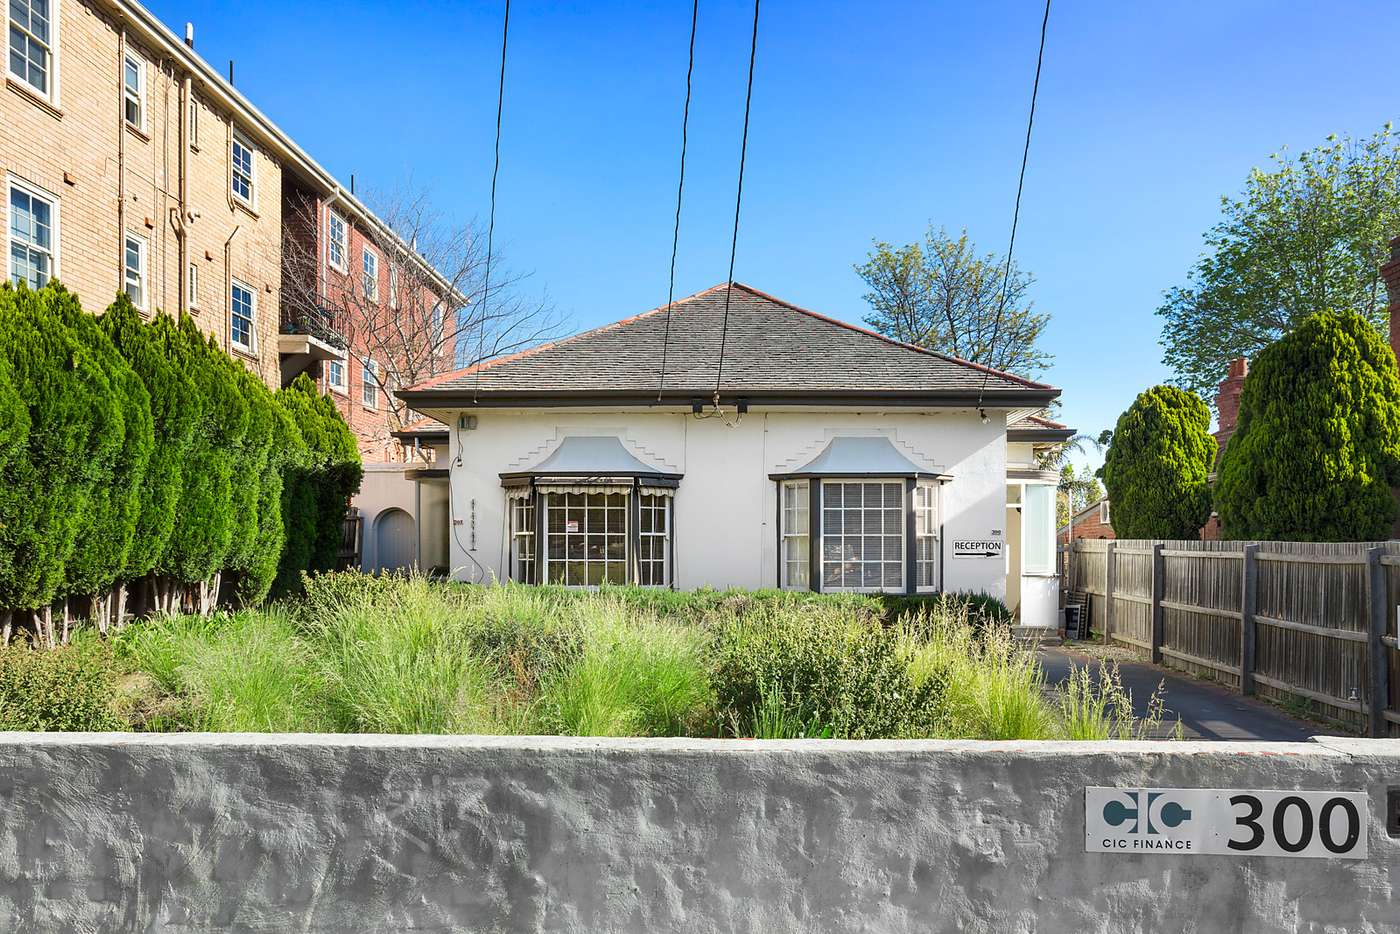 Main view of Homely house listing, 300 Dandenong Road, St Kilda East VIC 3183